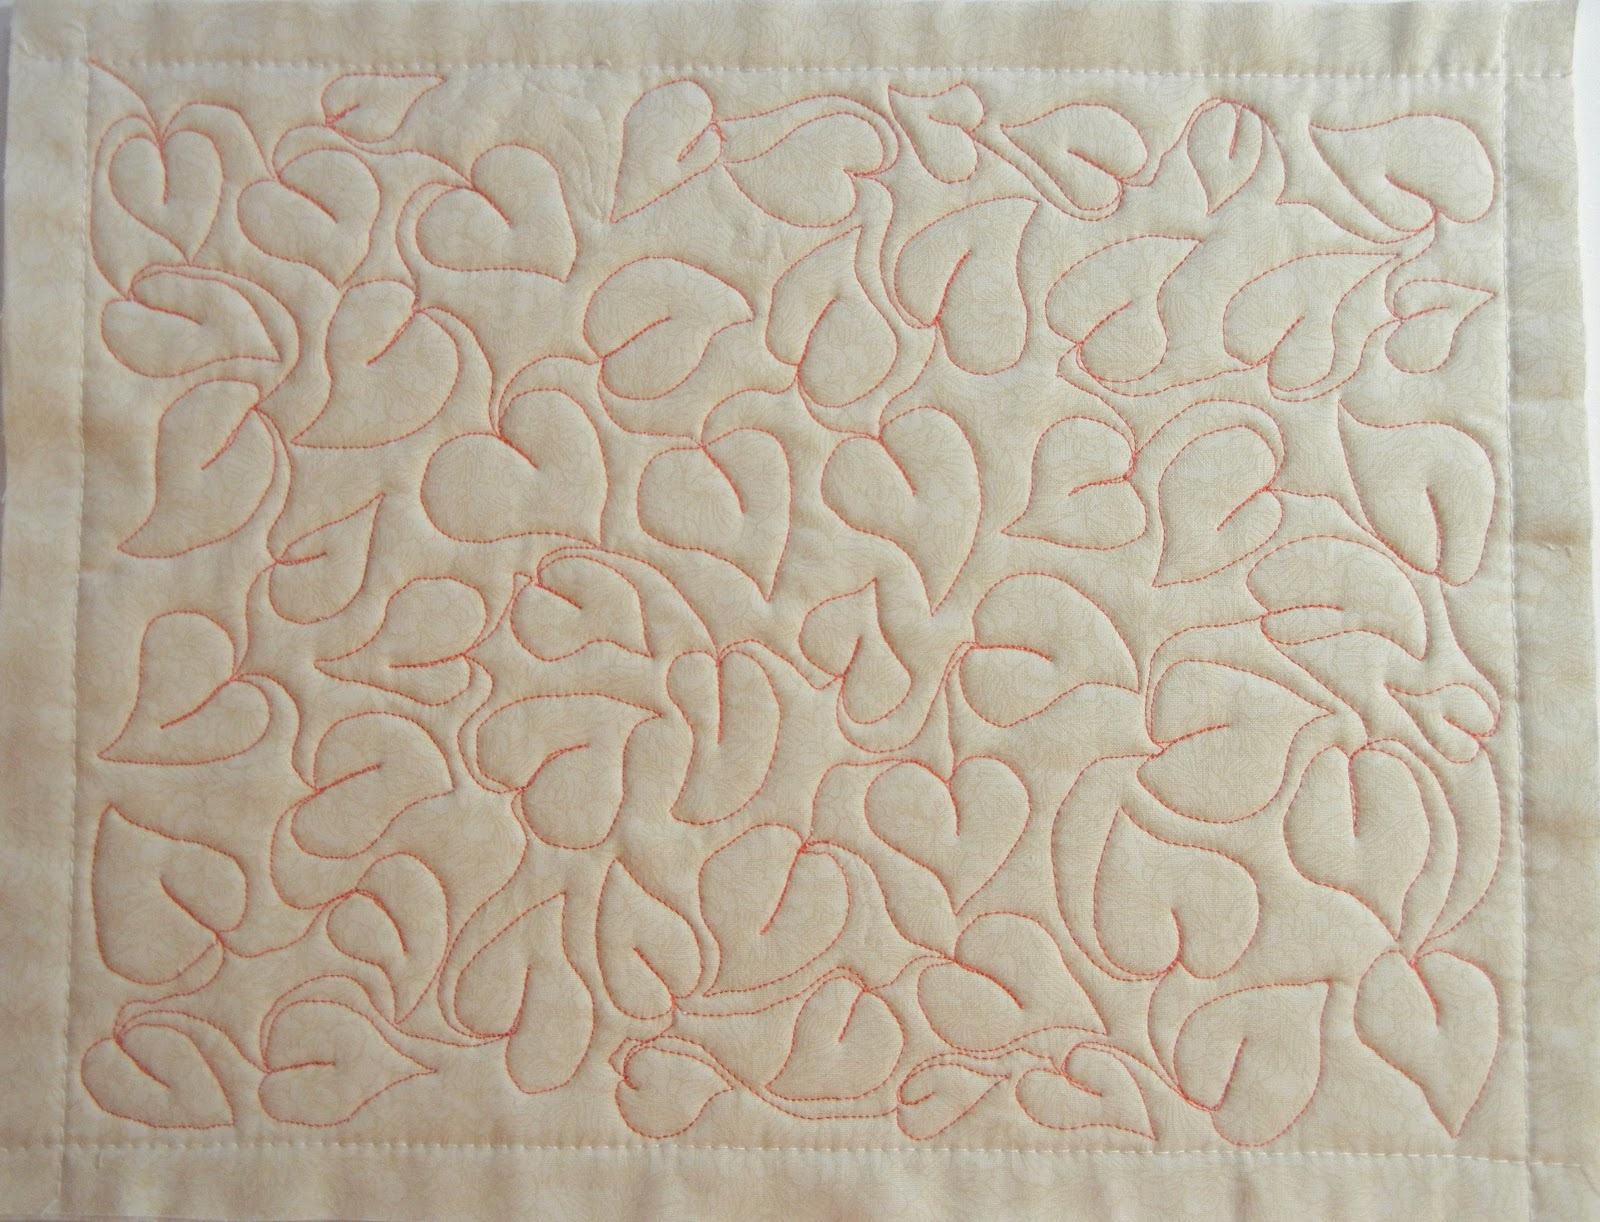 Free Motion Quilting Patterns Leaves : Joanie s Trendy Quilts : Free Motion Quilting Challenge & Heart Quilt Has Borders!